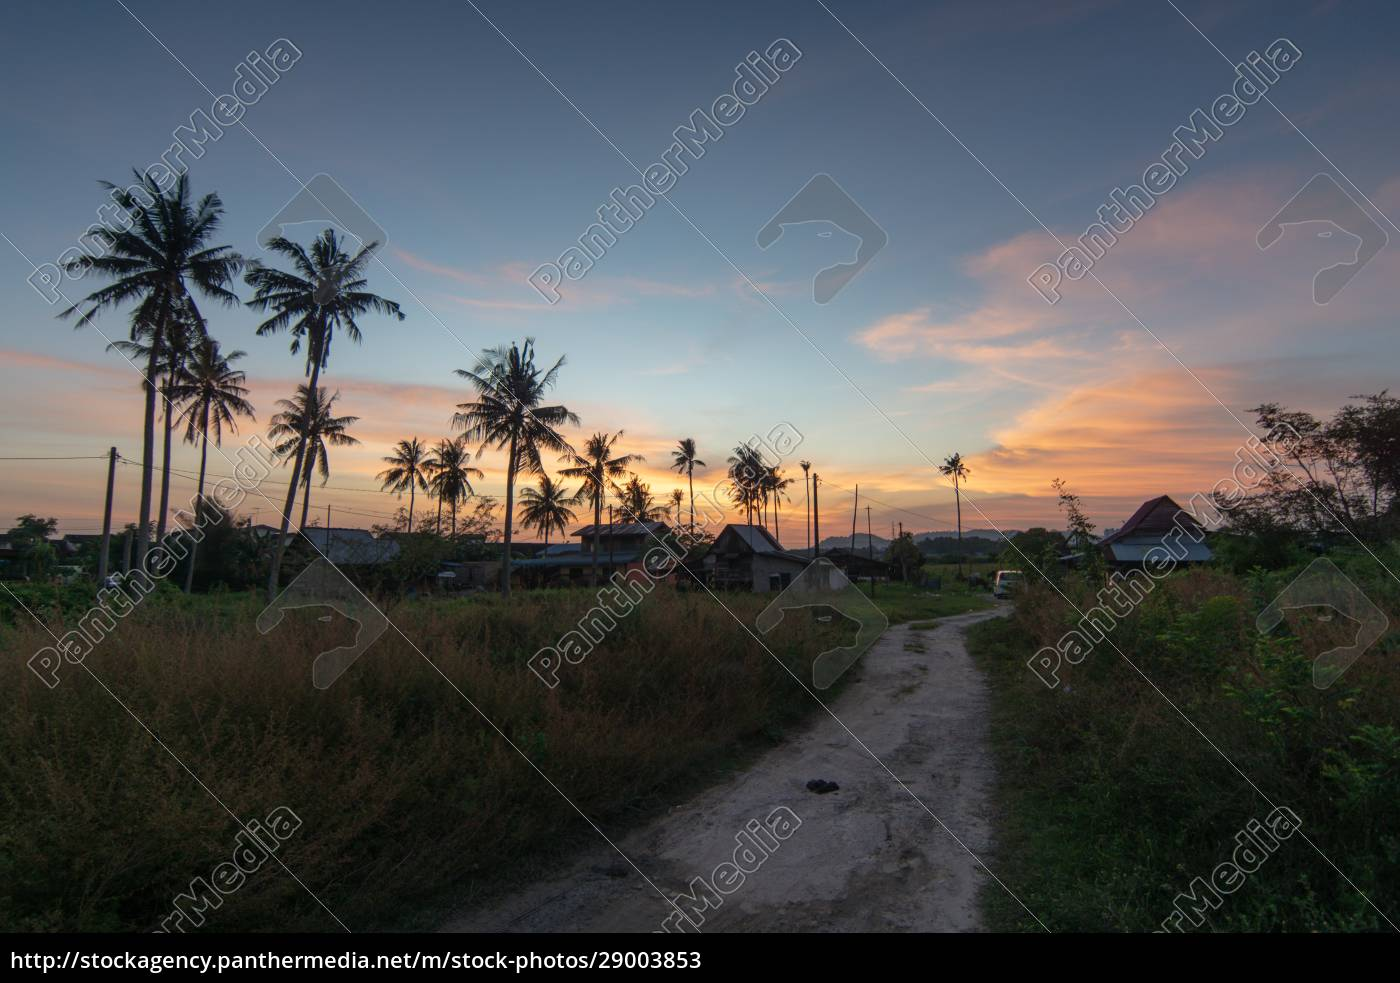 kampung, house, at, malaysia, with, surrounded - 29003853